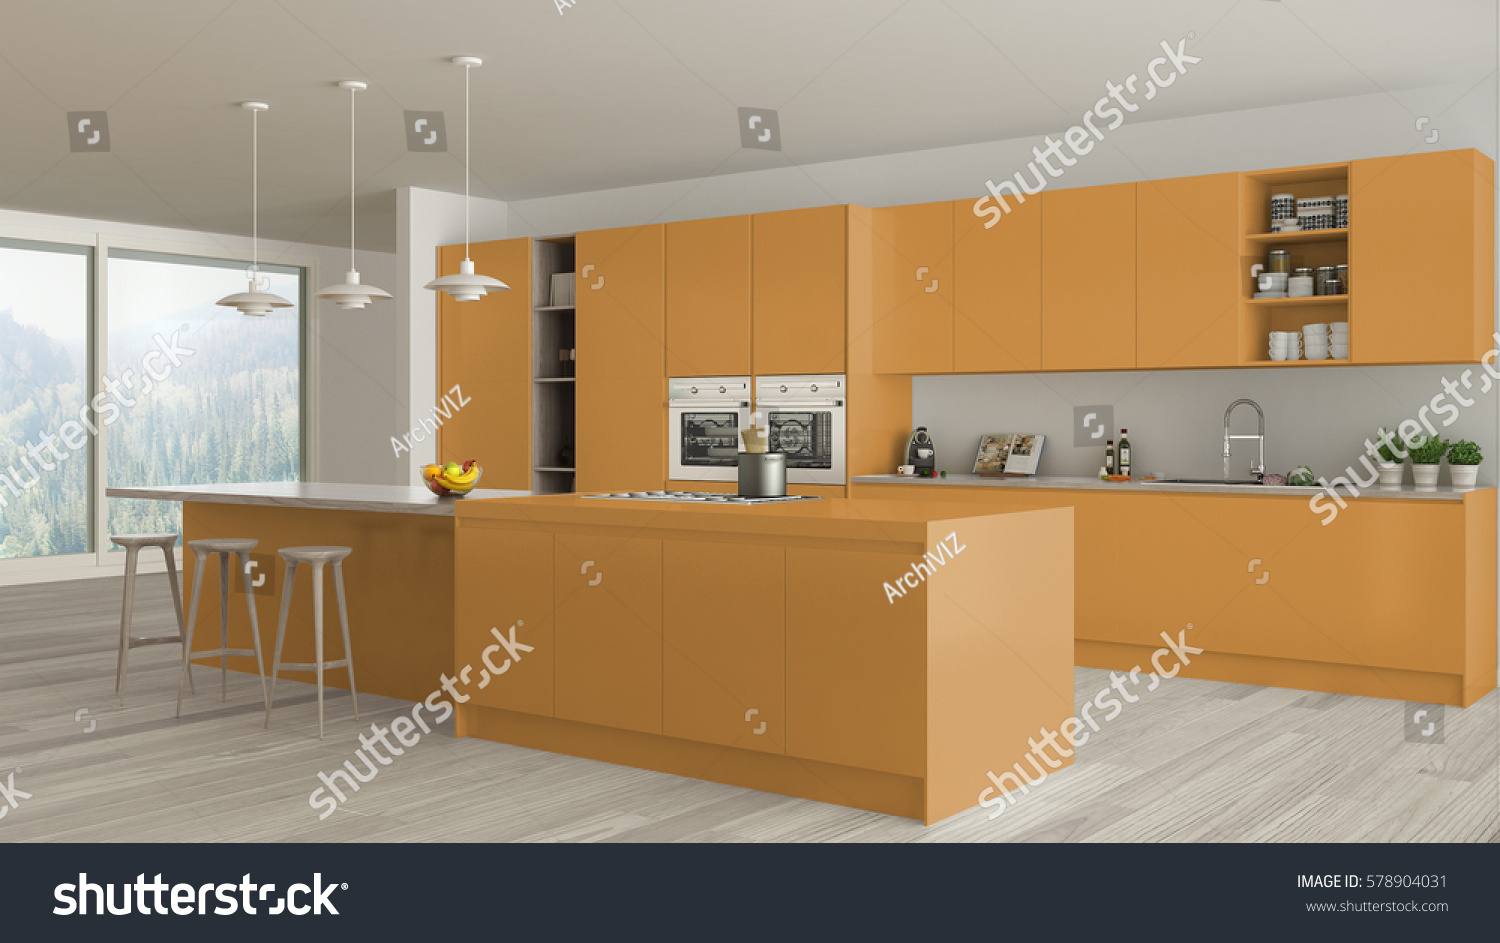 Scandinavian White Kitchen Wooden Orange Details Stock Illustration 578904031 Shutterstock